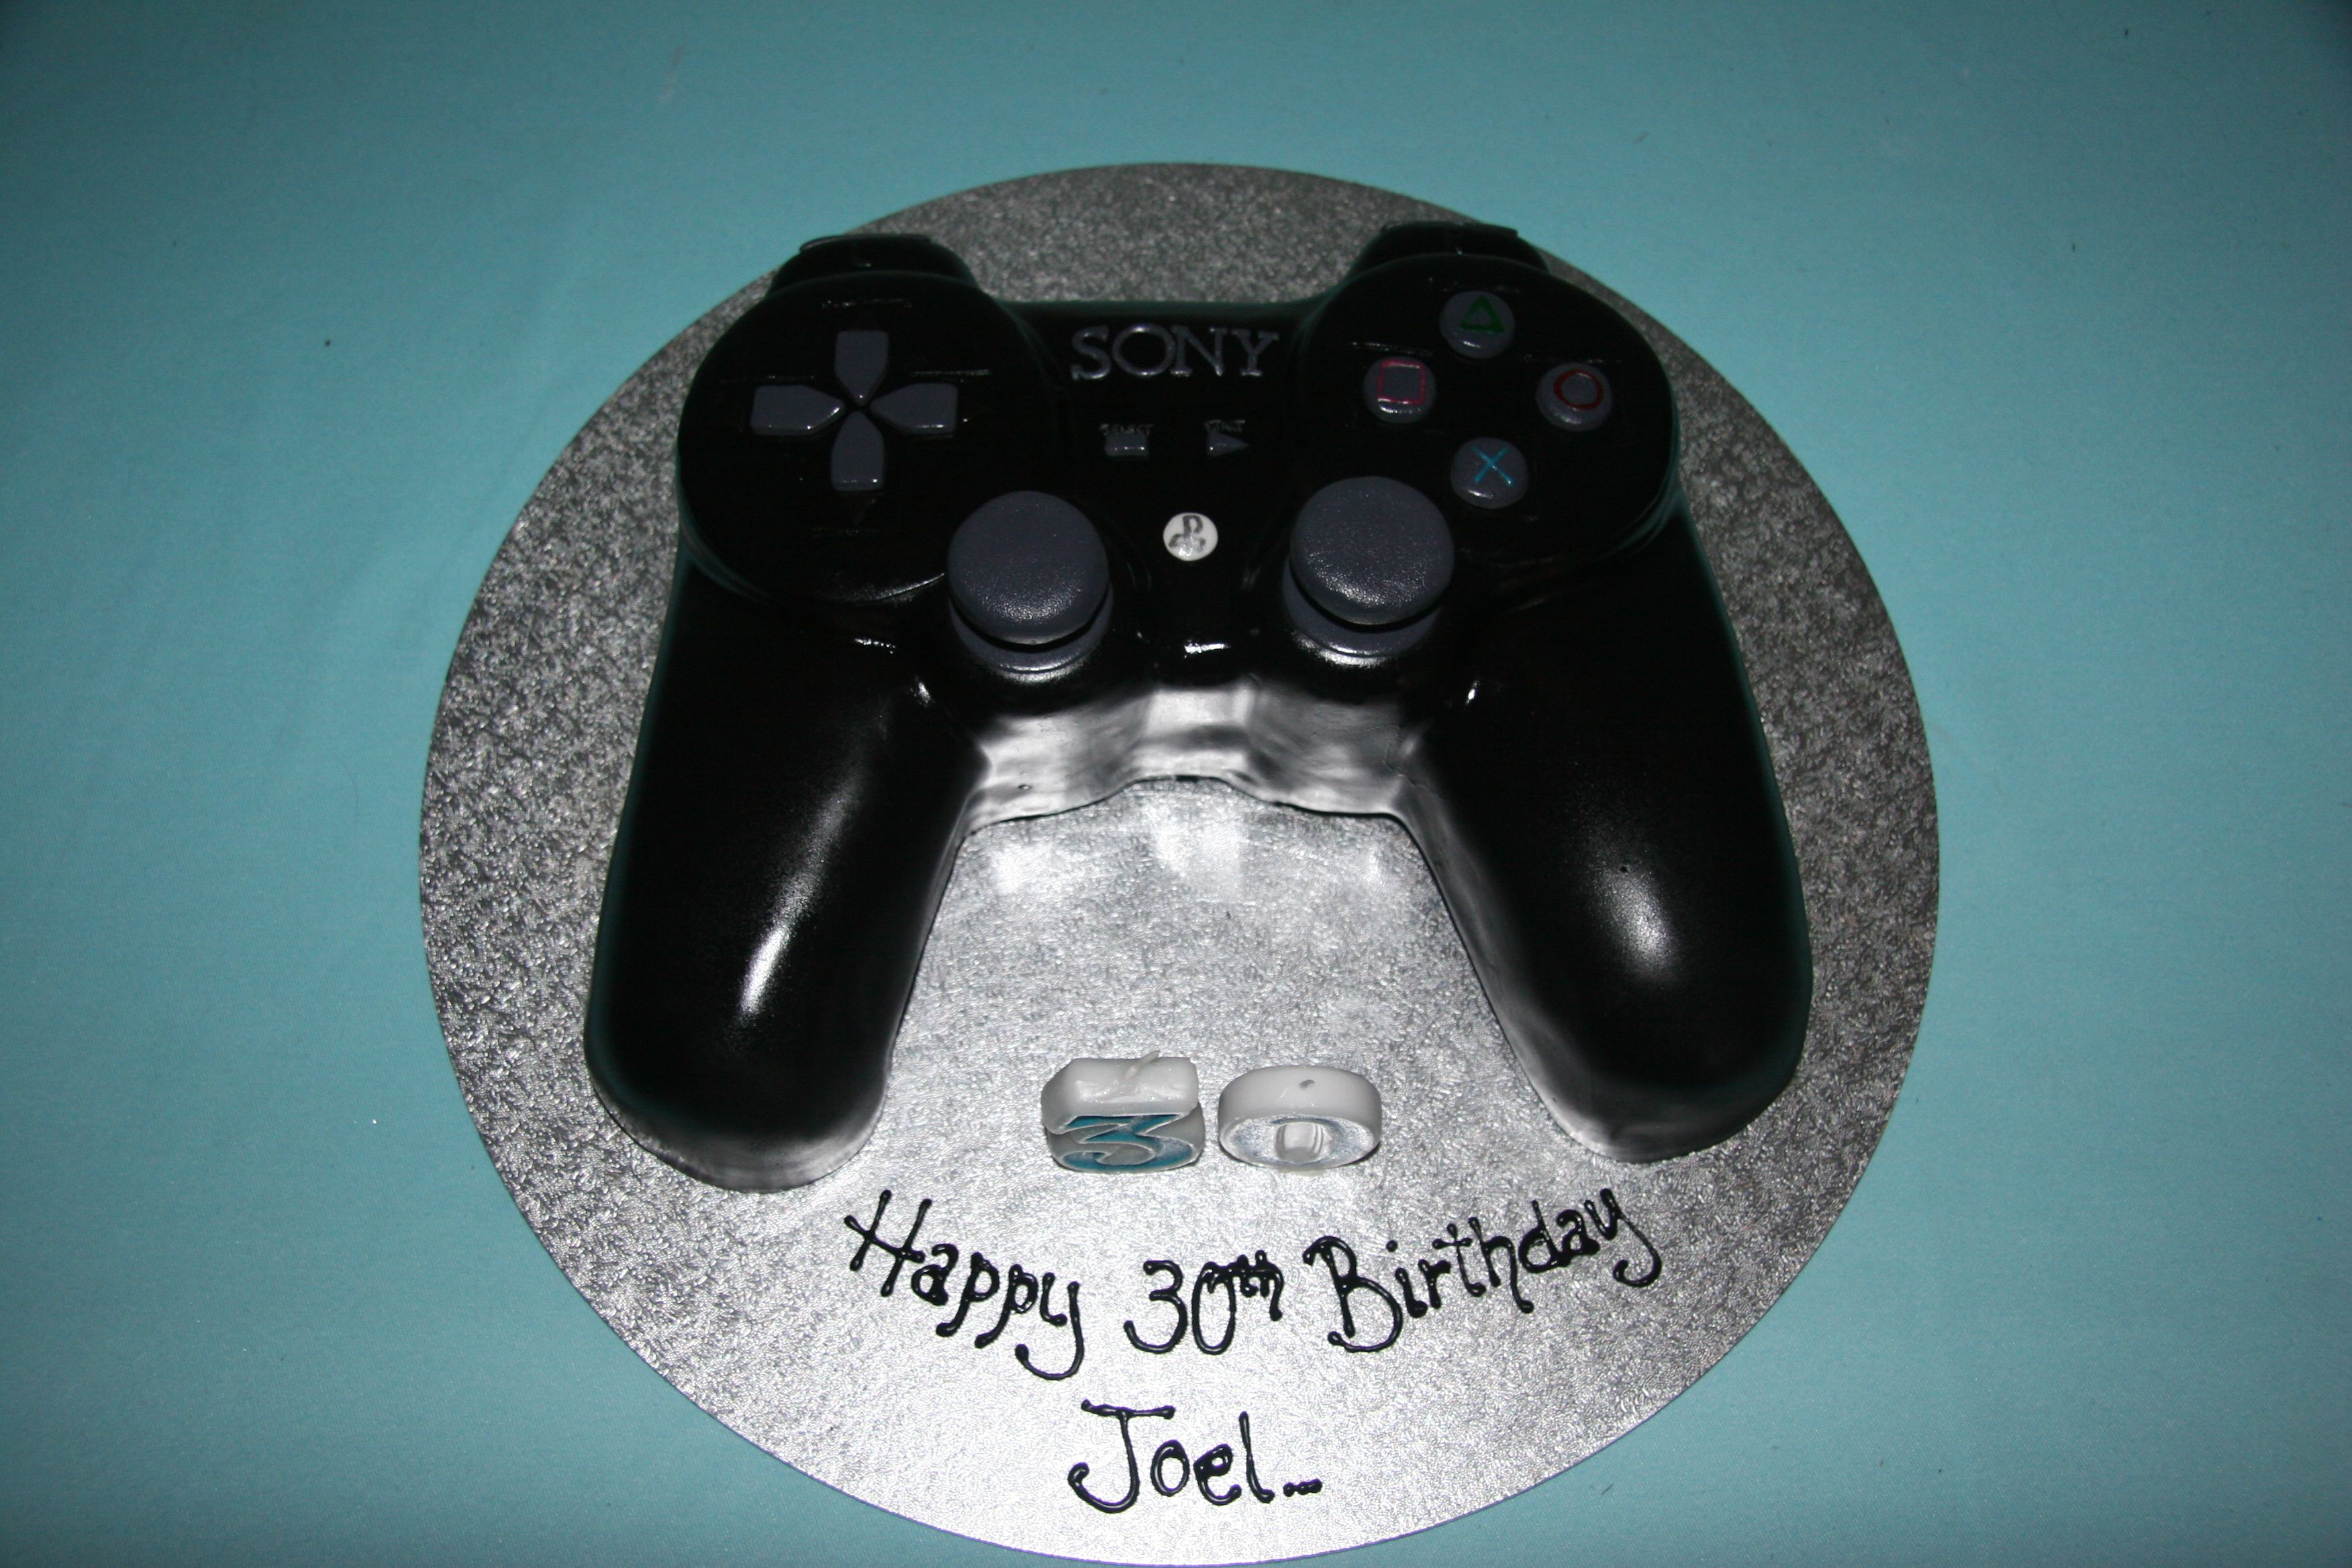 Playstation Controller Cake How To Make Cake Playstation